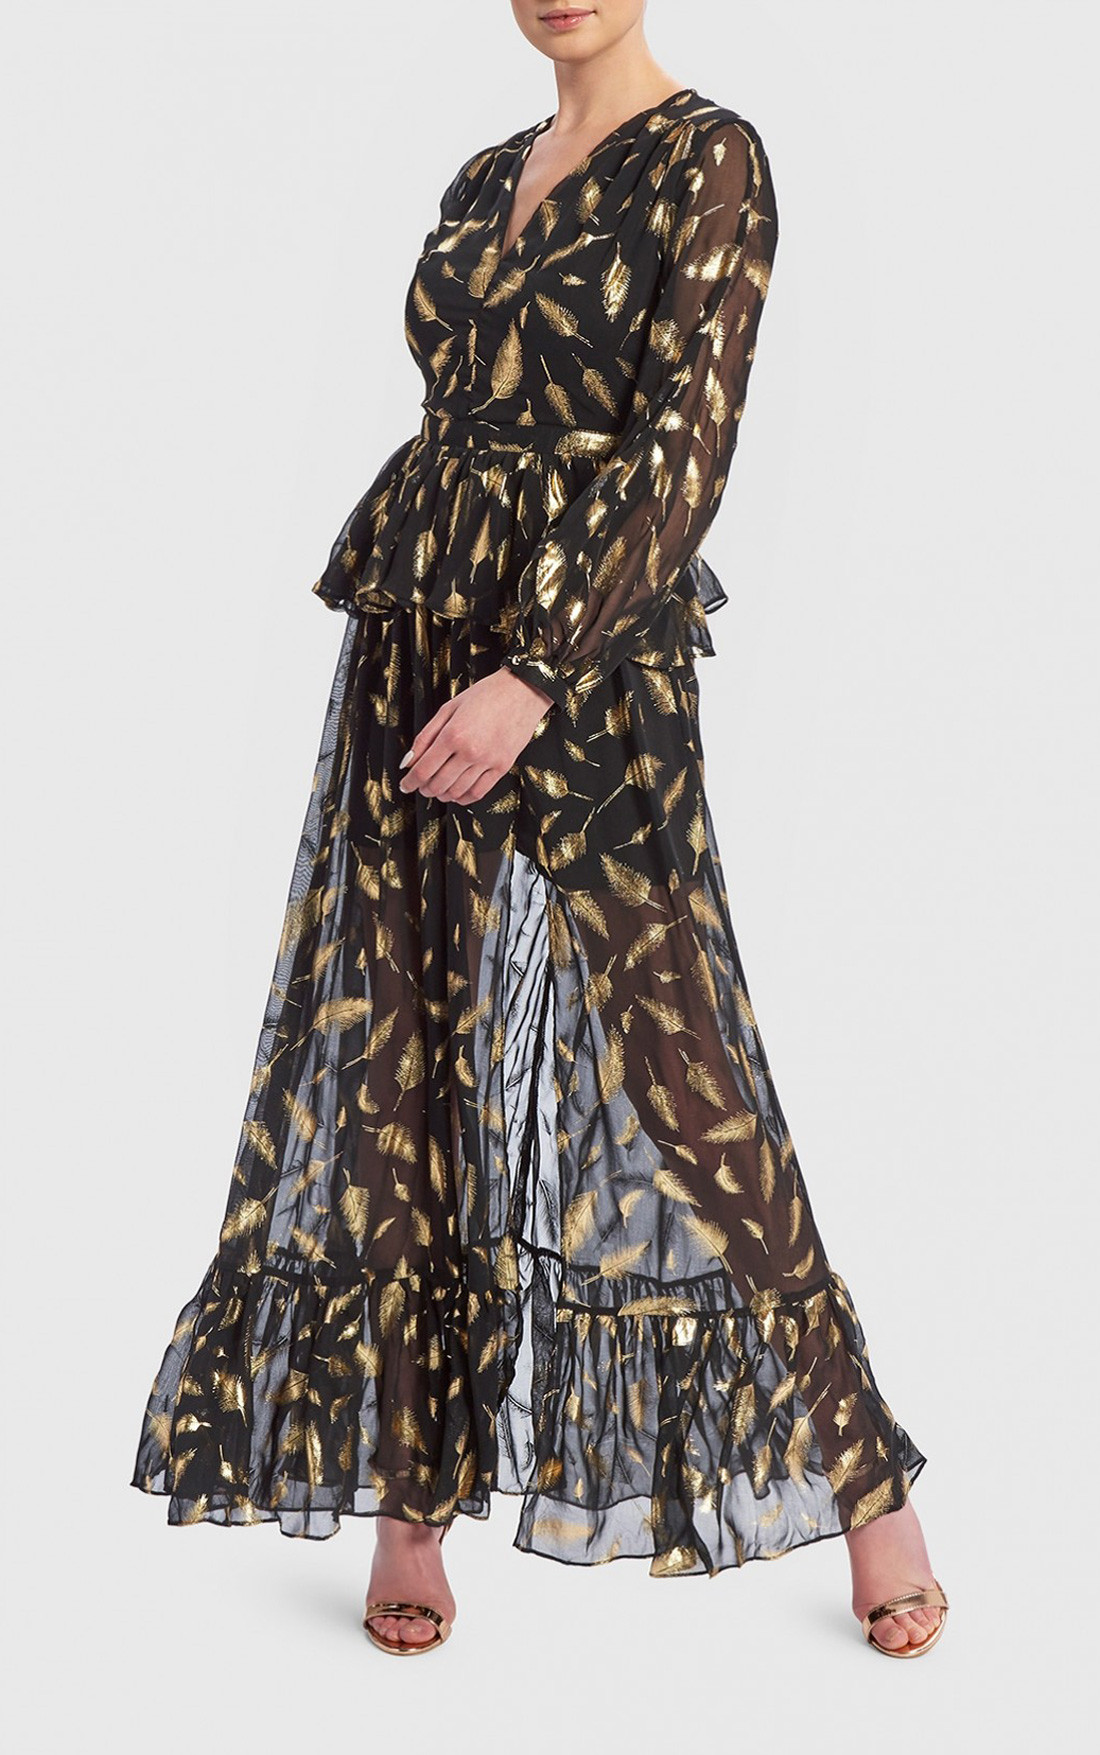 664dcf5ef61c1 Forever Unique Dresses | Womens Black Dress with Gold Leaves ...